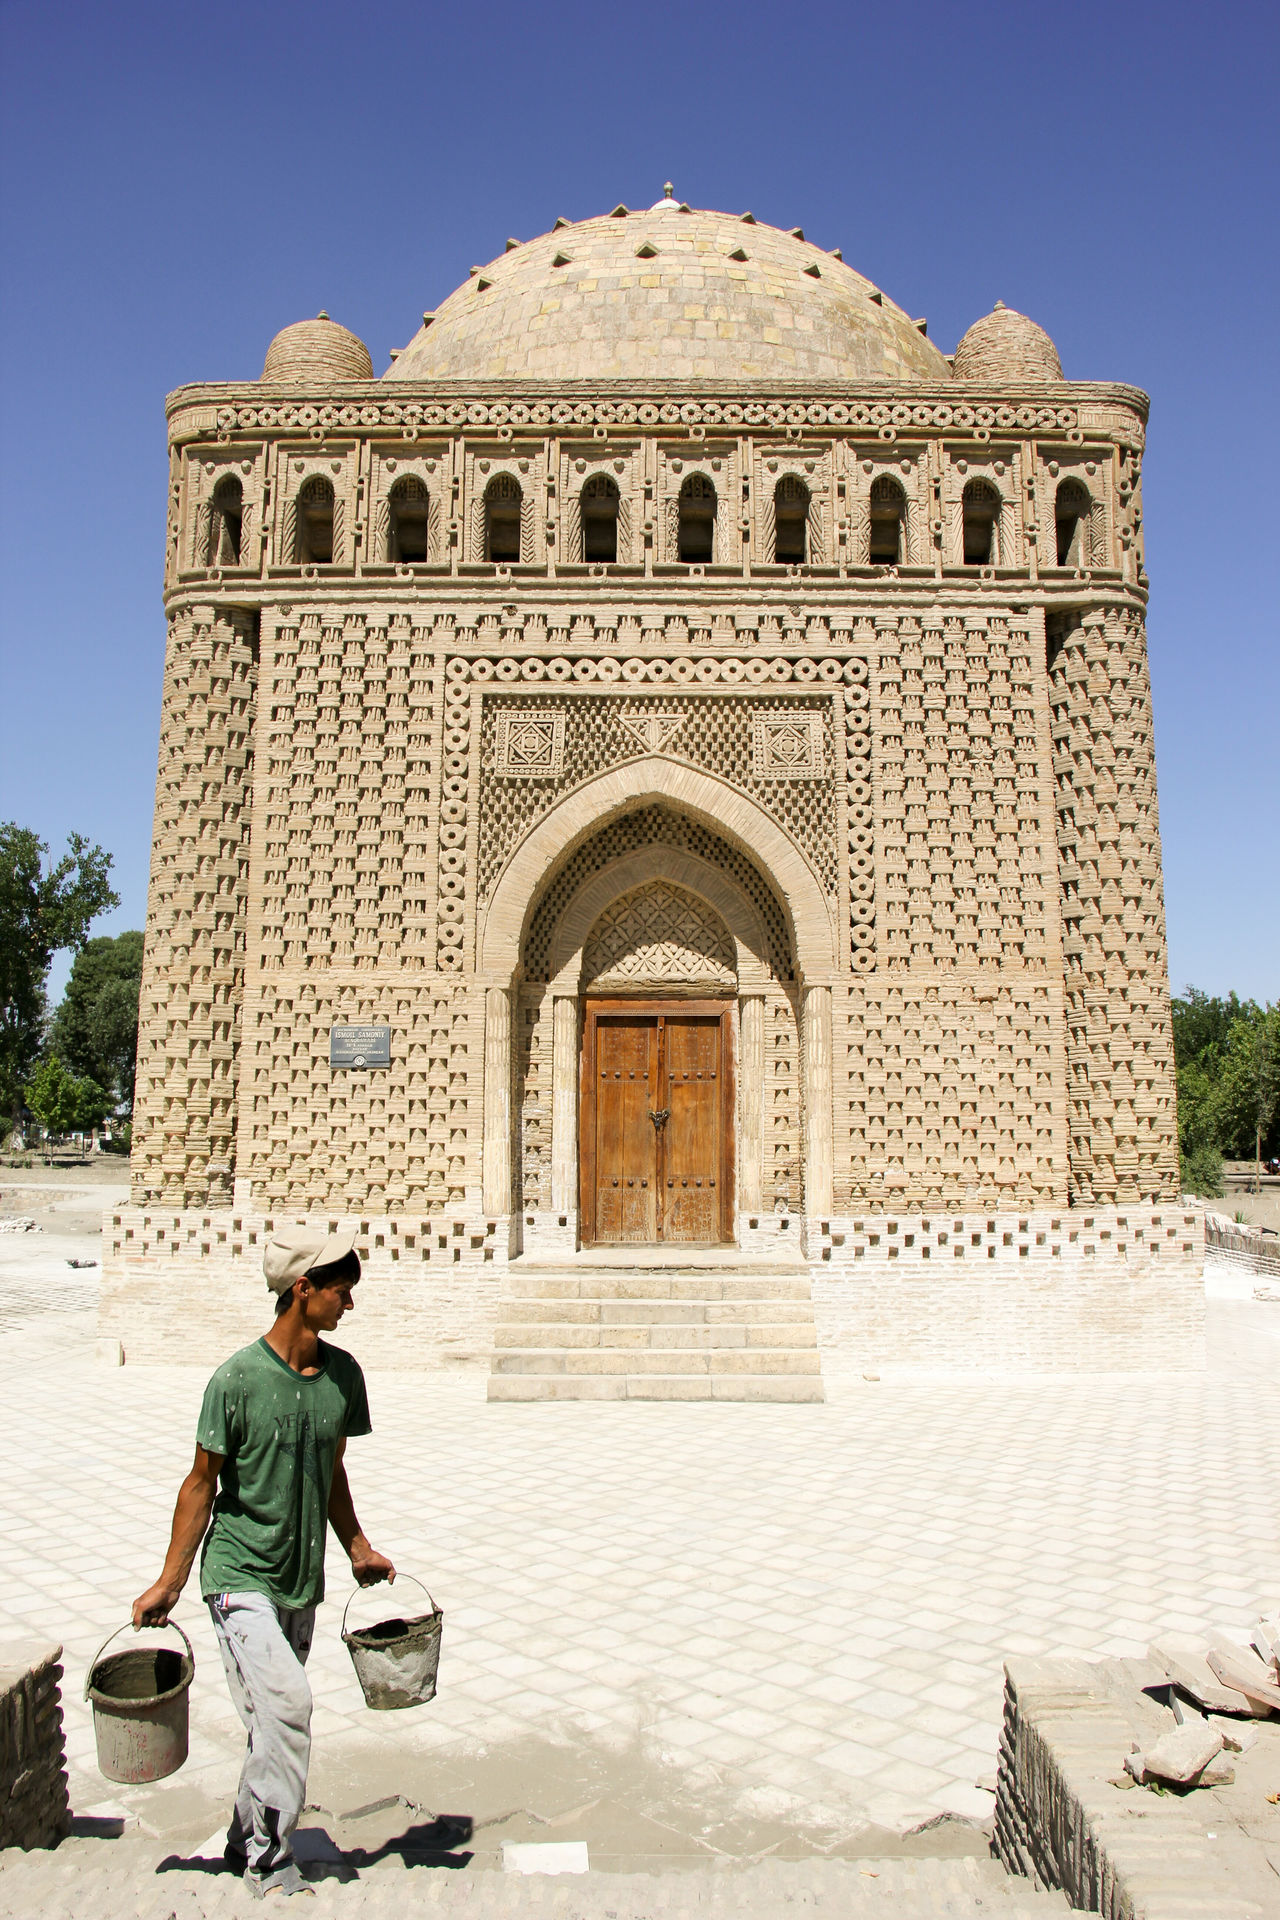 Adult Arch Architecture Building Exterior Built Structure Bukhara Clear Sky Day History Islamic Architecture Mausoleum Men One Man Only One Person Outdoors People Real People Silk Road Sky Travel Destinations Uzbekistan Young Adult